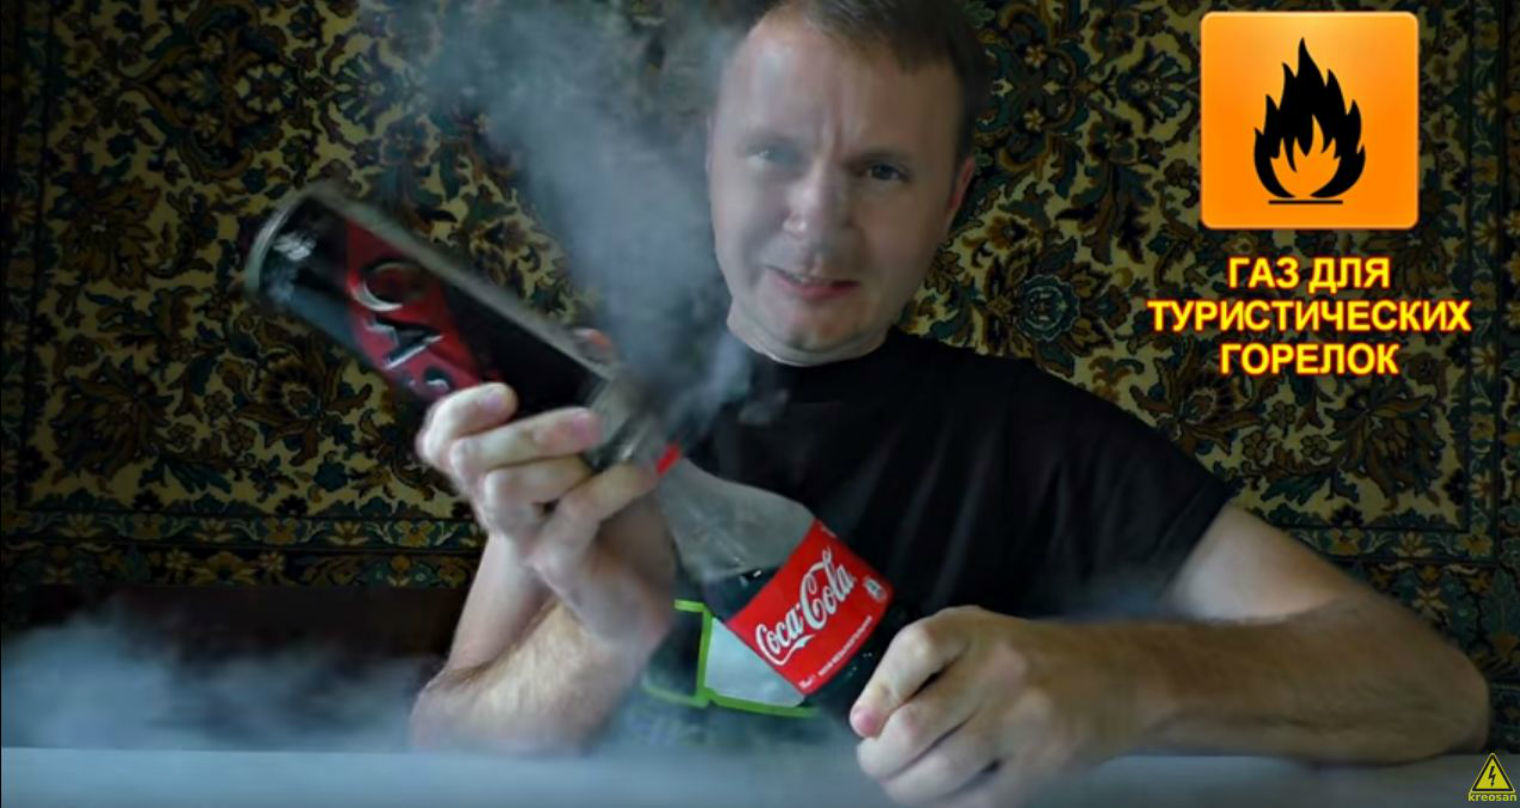 UNILAD coke23 One Man Decided To Pump A Bottle Of Coke With Propane, Guess What Happens Next?